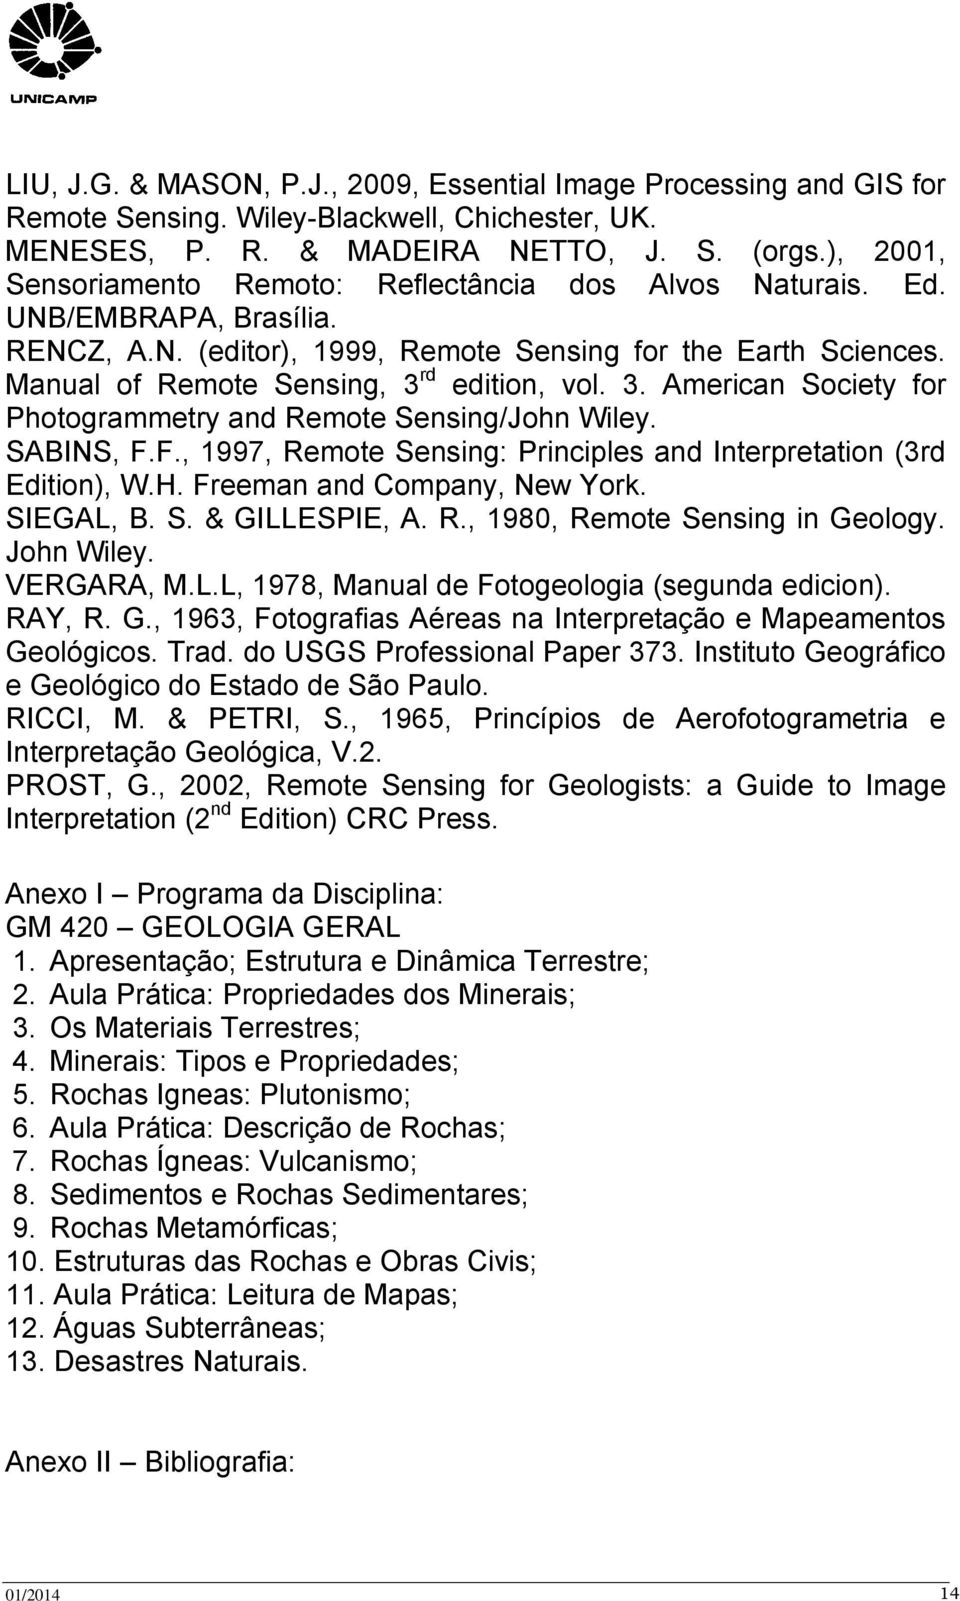 Manual of Remote Sensing, 3 rd edition, vol. 3. American Society for Photogrammetry and Remote Sensing/John Wiley. SABINS, F.F., 1997, Remote Sensing: Principles and Interpretation (3rd Edition), W.H.